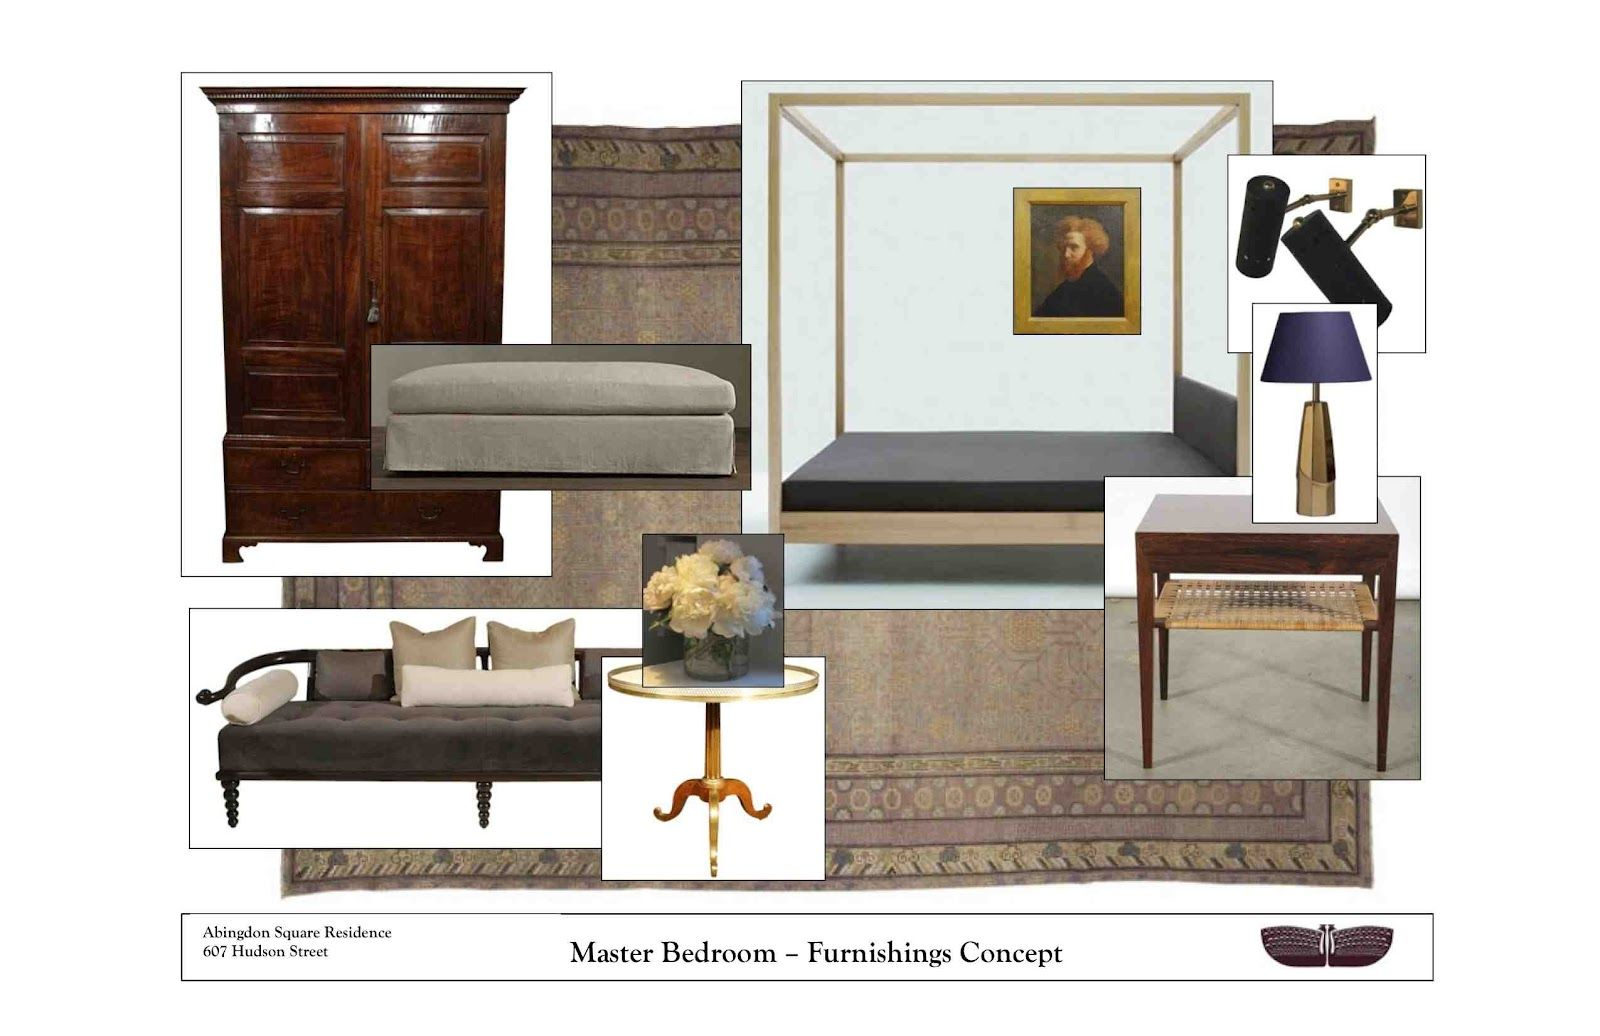 Furnishings Concept for residence at The Abingdon NYC Greenwich